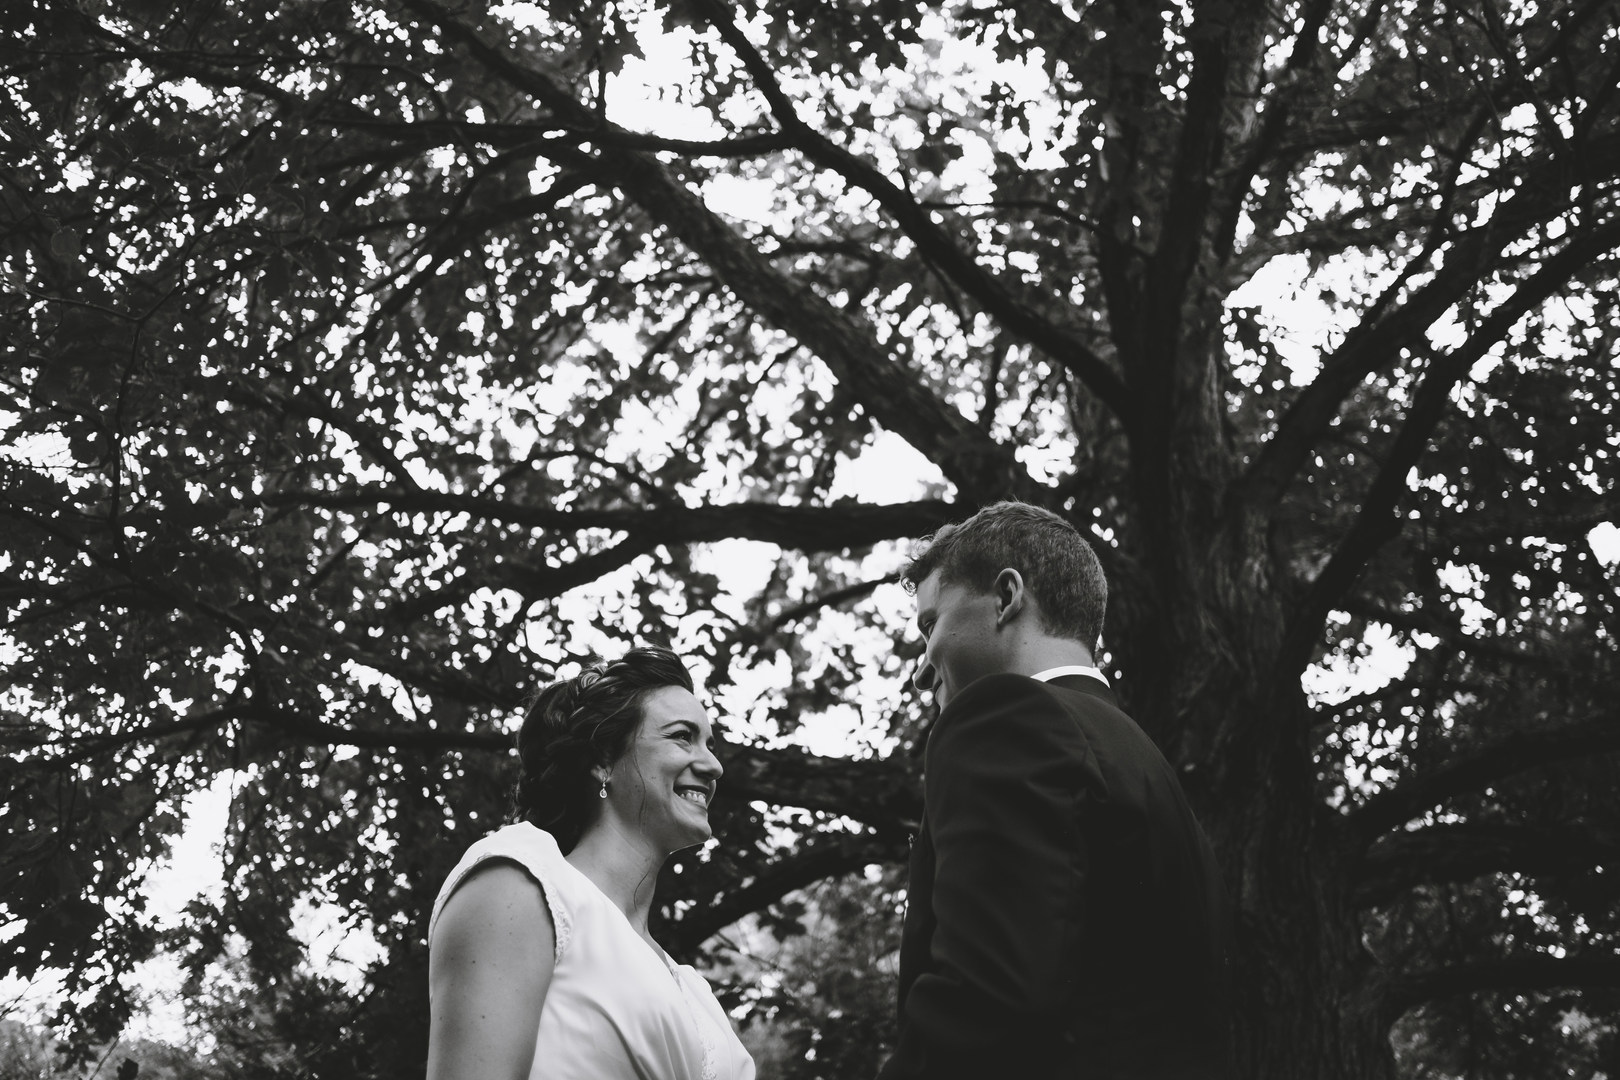 Ottawa dominion arboretum wedding photographer